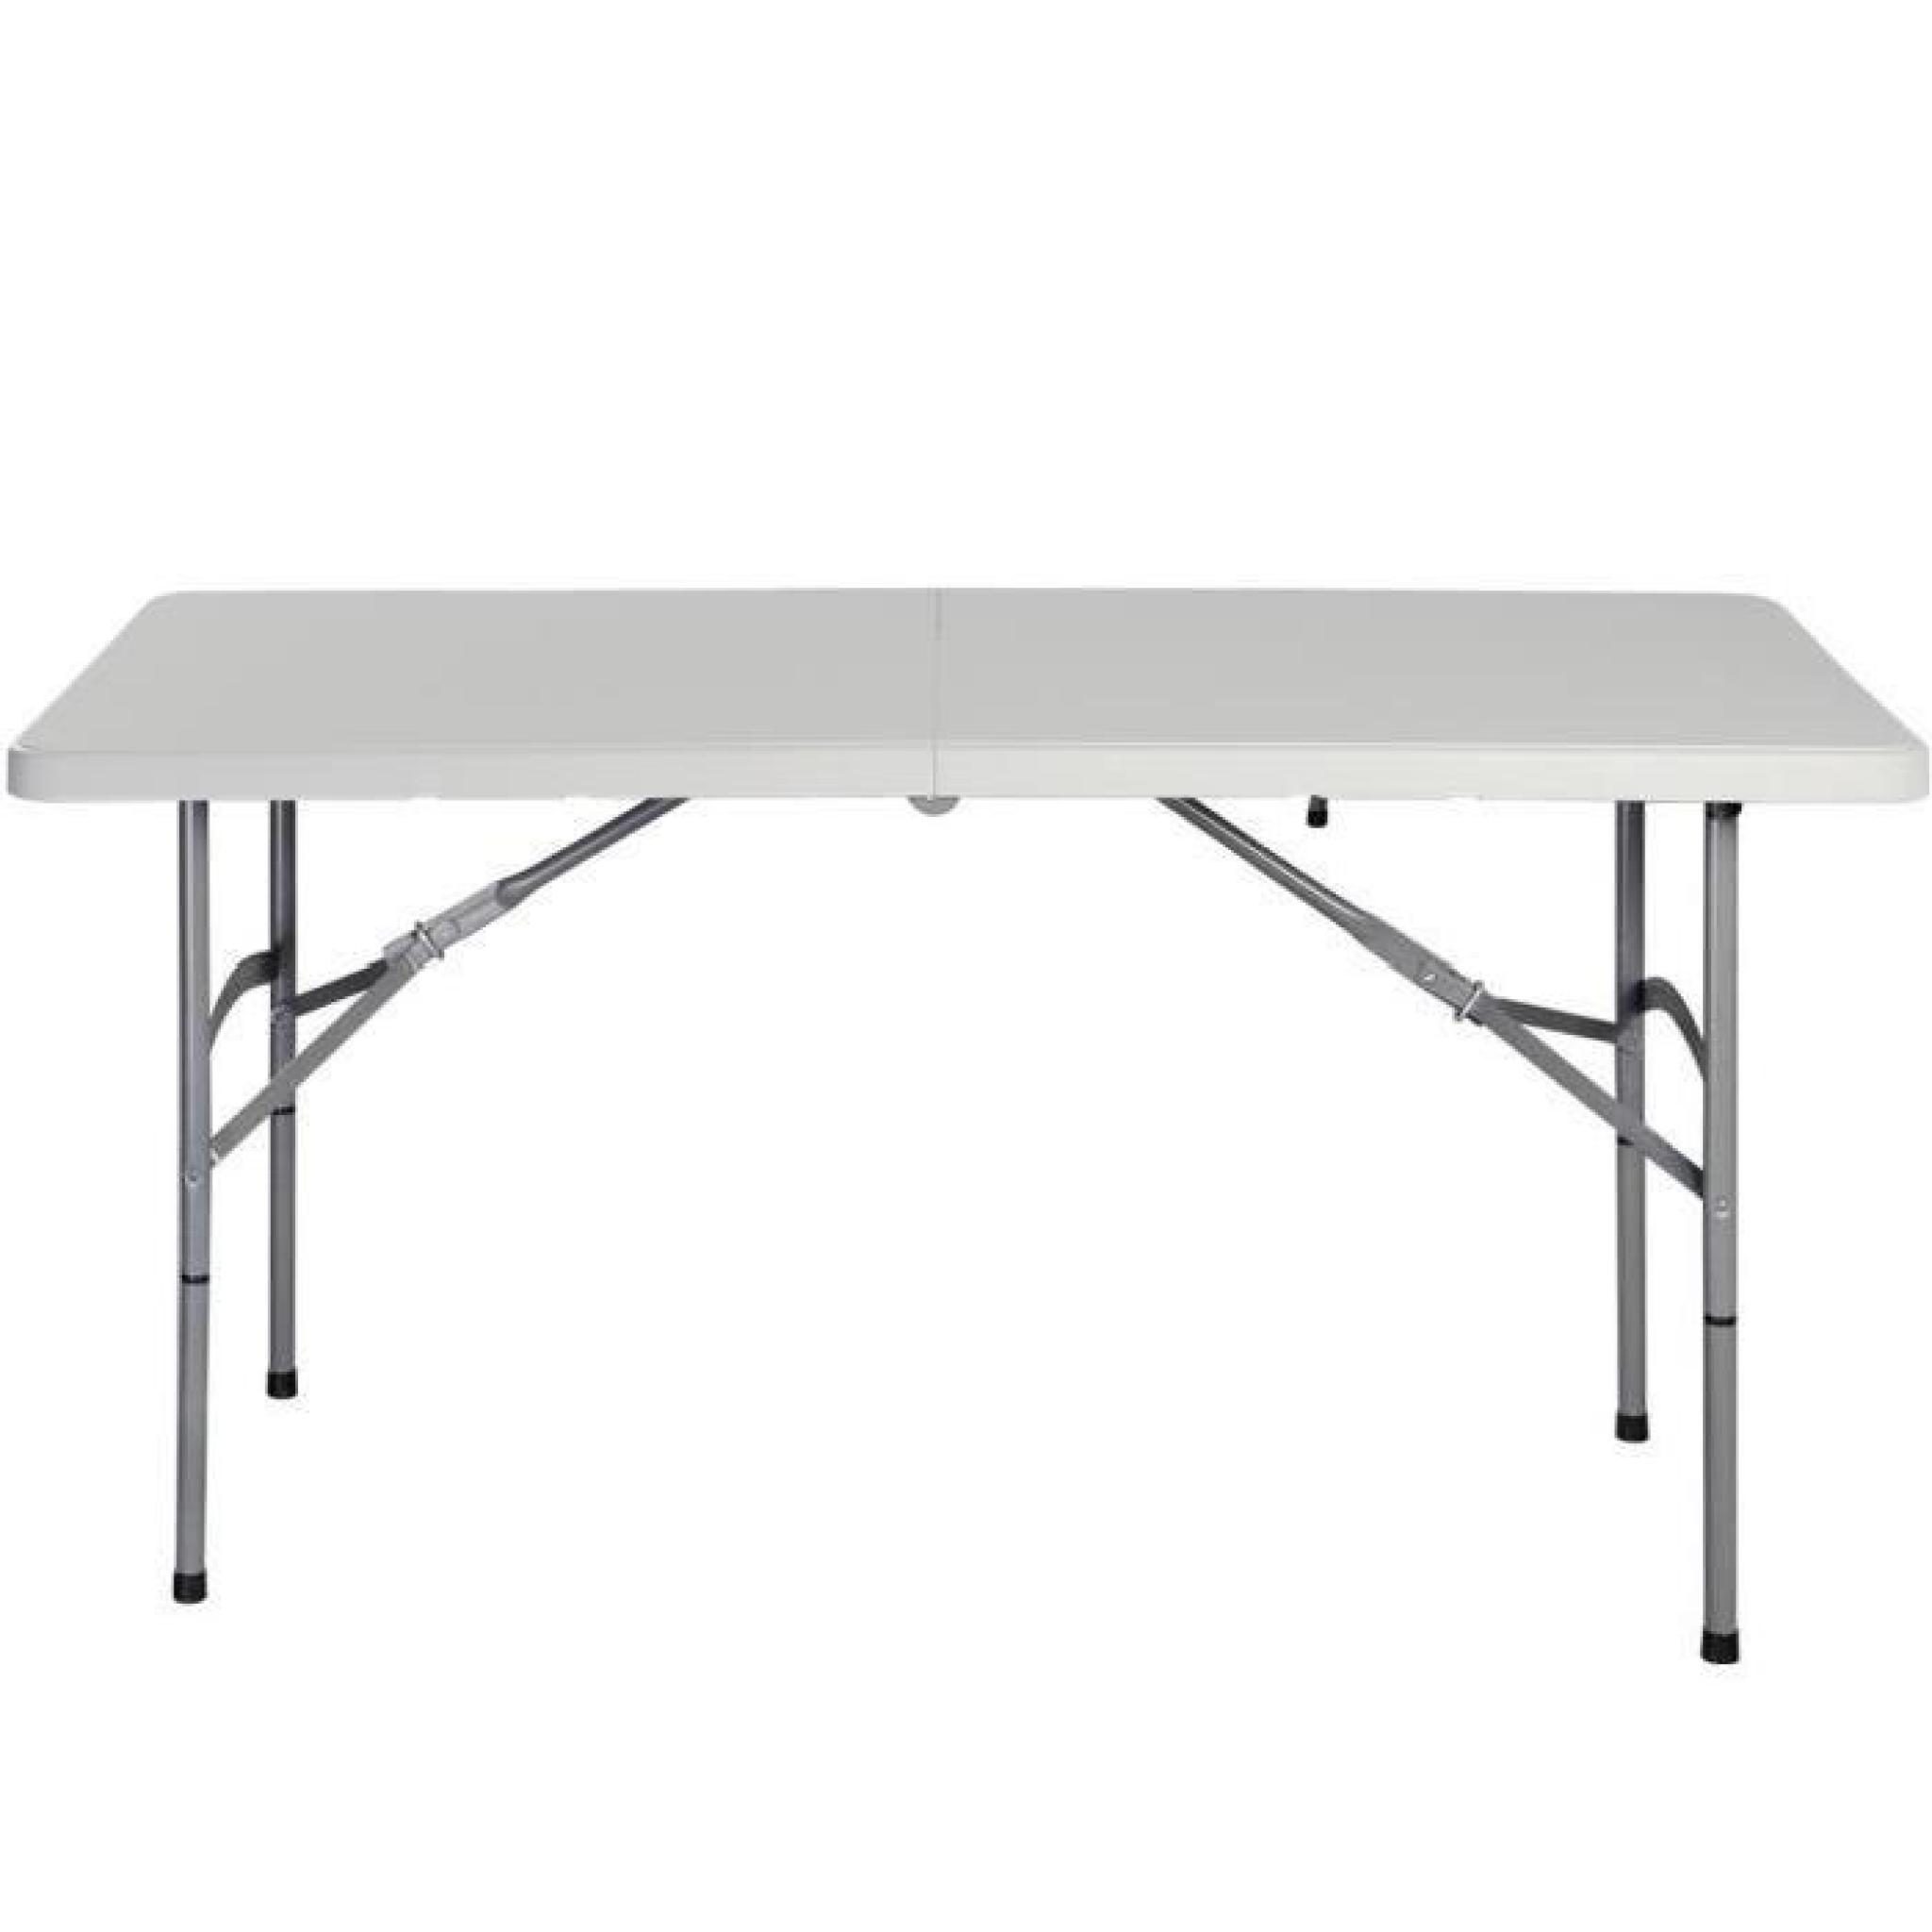 Table pliante portable table de camping valise jardin 122cm